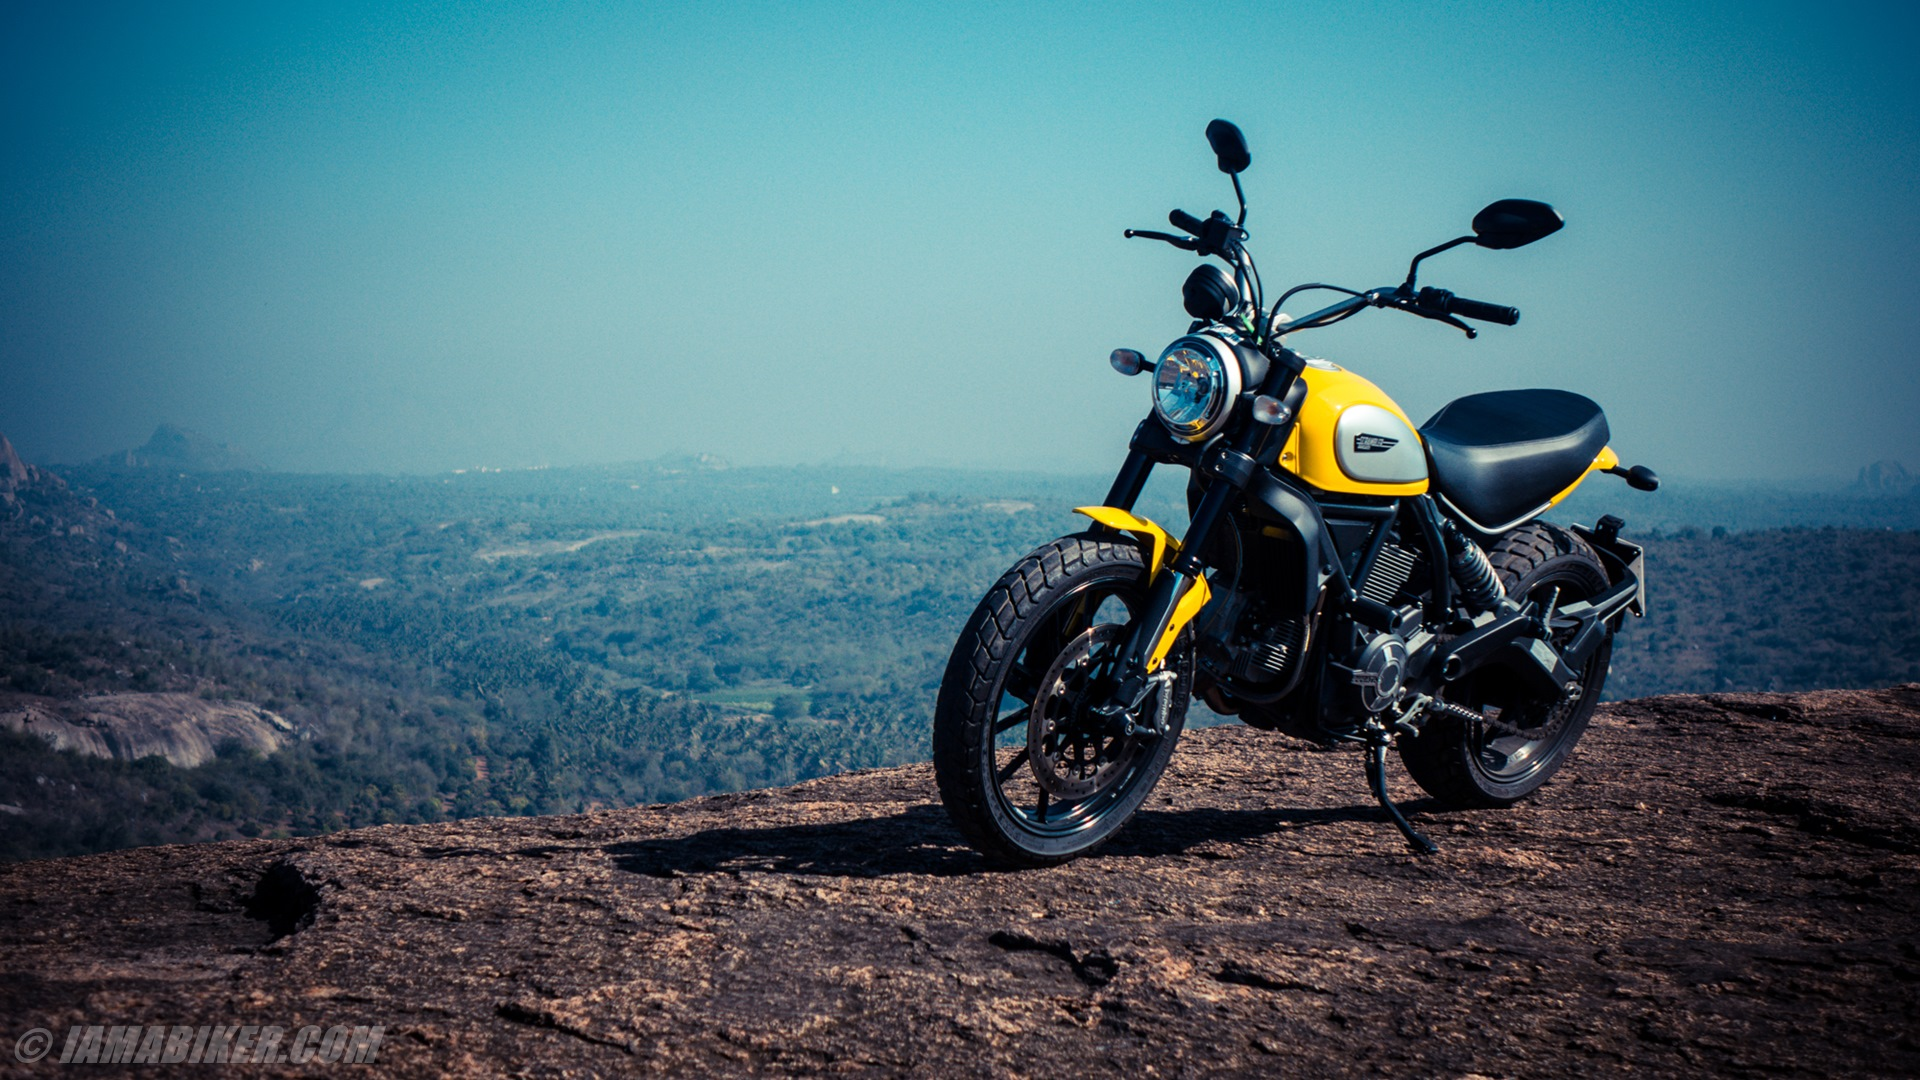 Ducati Scrambler Hd Wallpapers Iamabiker HD Wallpapers Download Free Images Wallpaper [1000image.com]